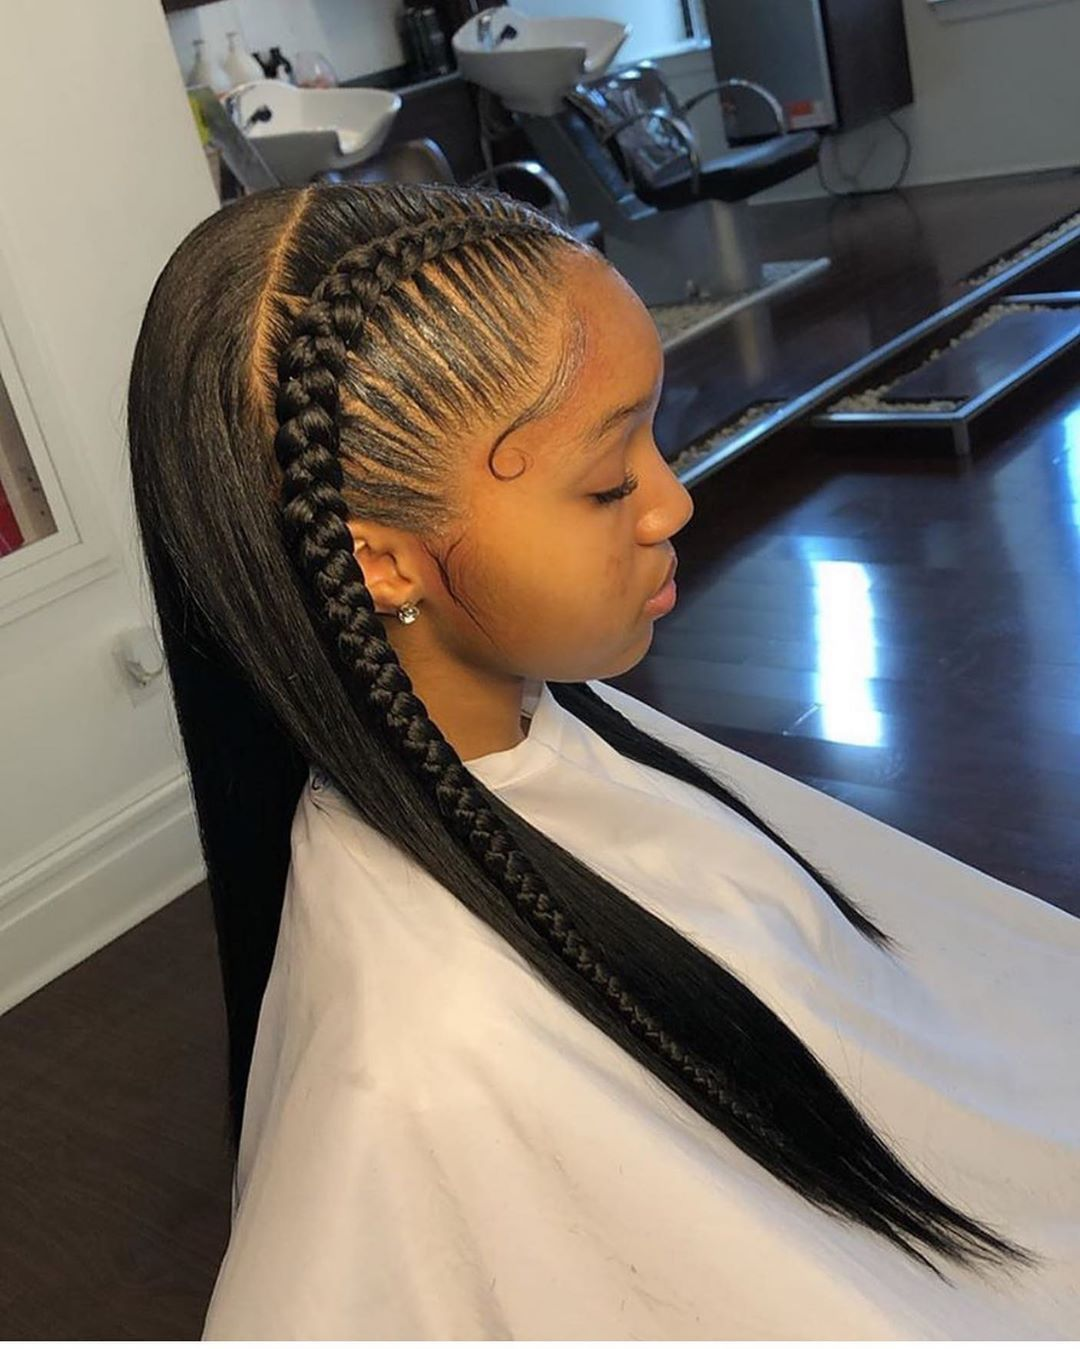 Thriving Hair 9a Top Virgin Human Hair Silky Straight 4 4 13 6 1 Lace Front Wigs With Baby Hairs V2 Front Hair Styles Cool Braid Hairstyles Braided Hairstyles